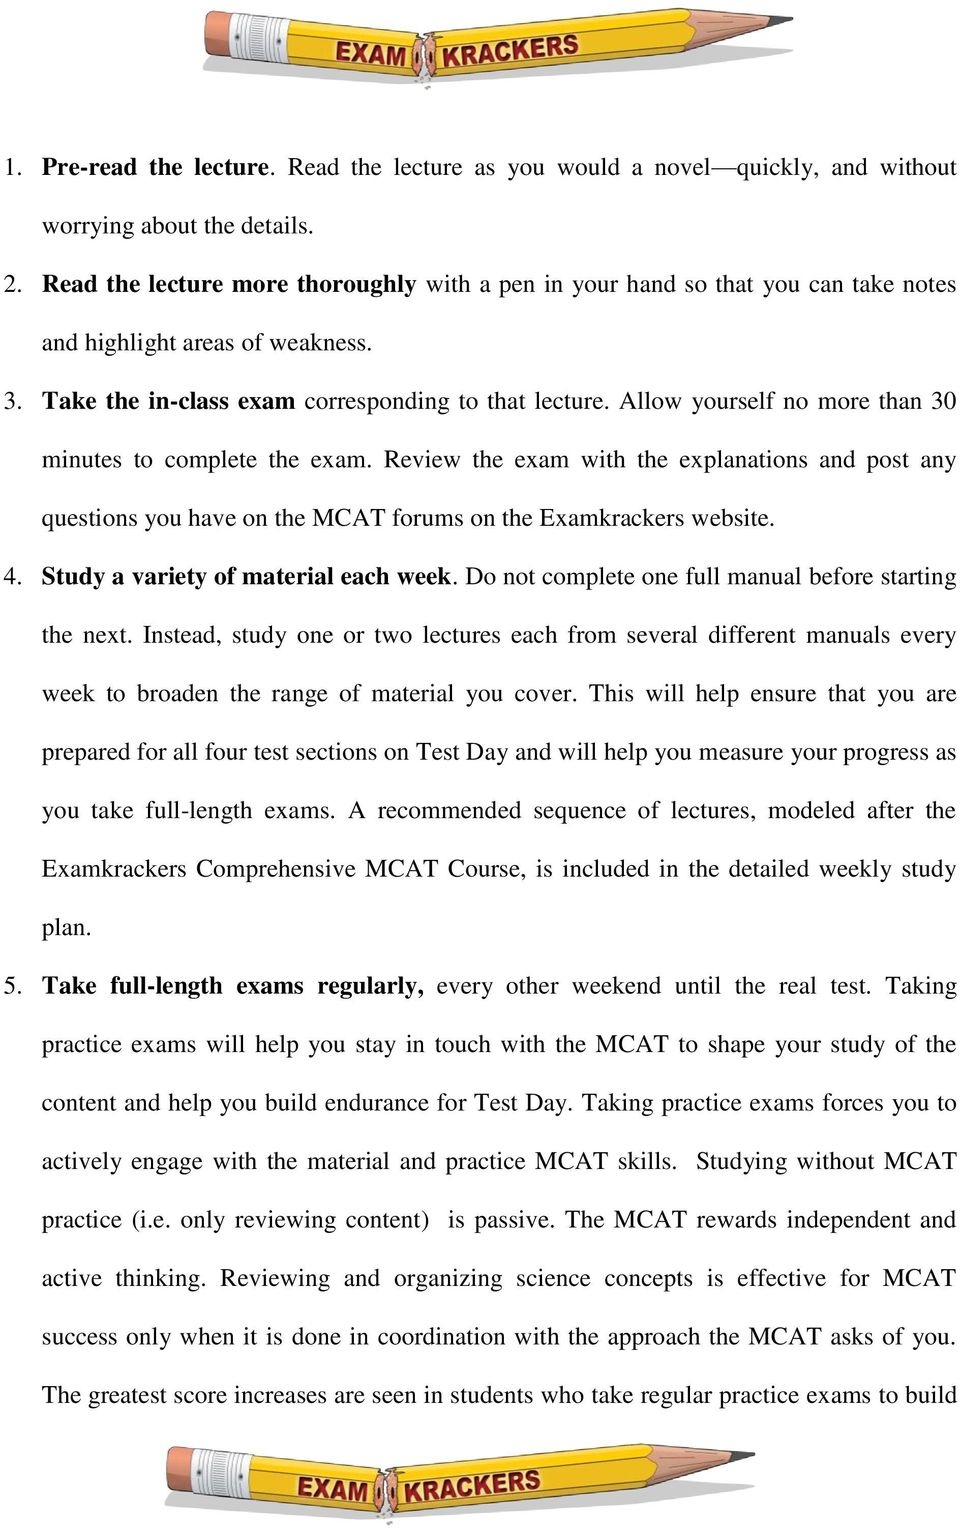 over 20 bonus mcat ebooks Array - examkrackers home study schedule pdf rh  docplayer net